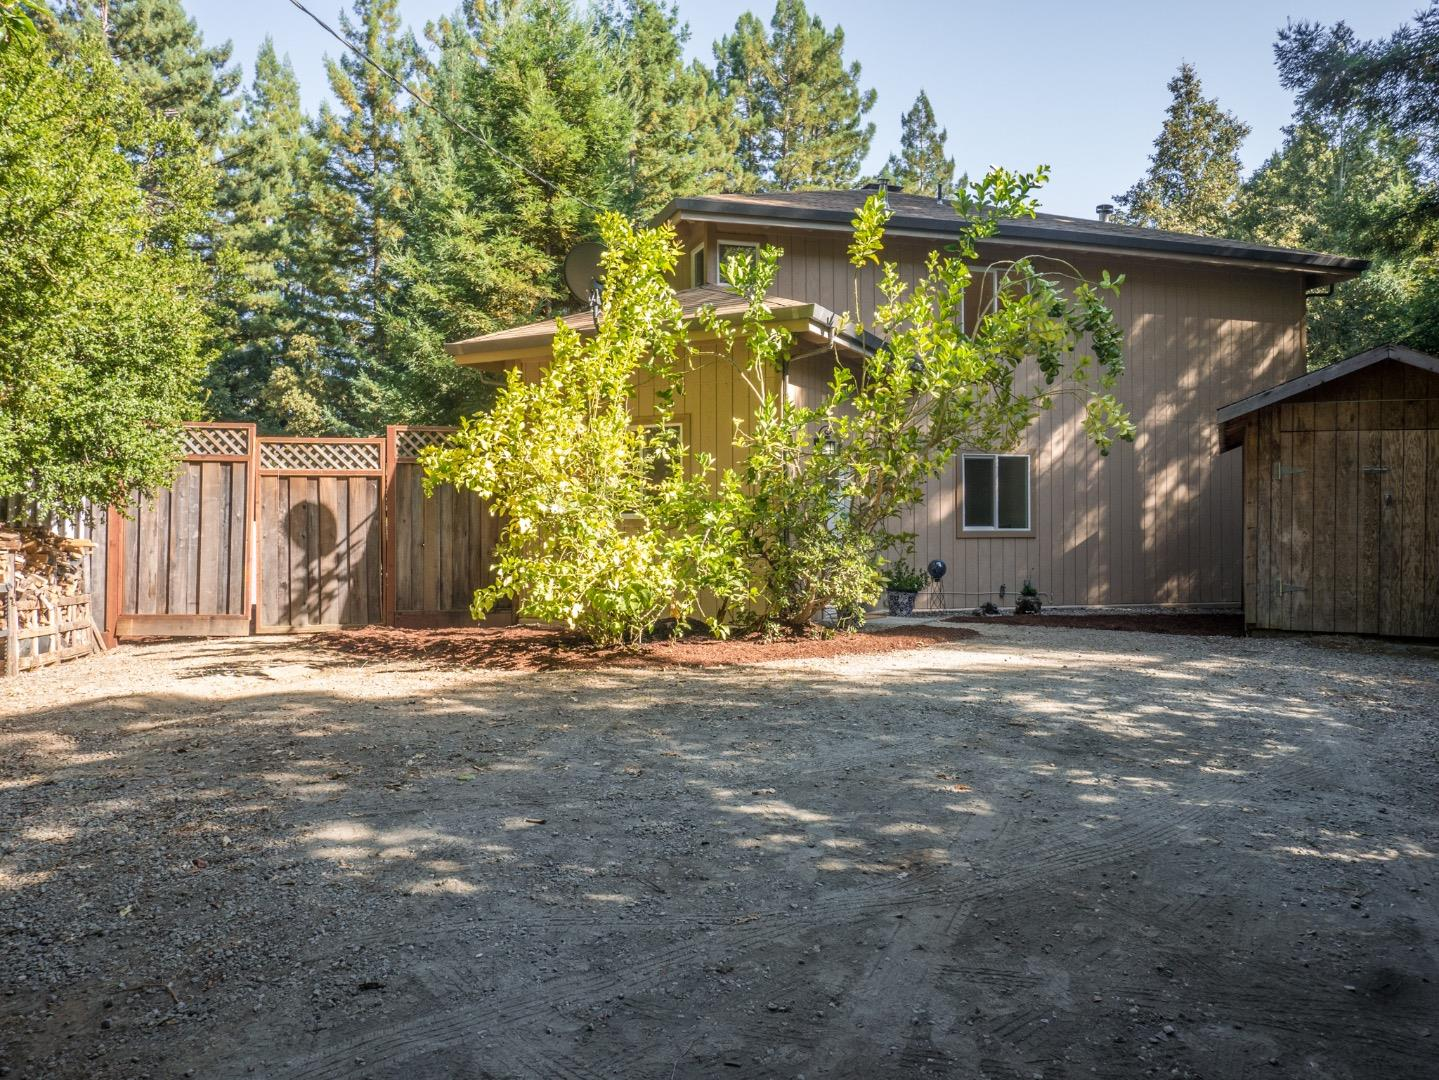 Maison unifamiliale pour l Vente à 1492 Redwood Road Corralitos, Californie 95076 États-Unis